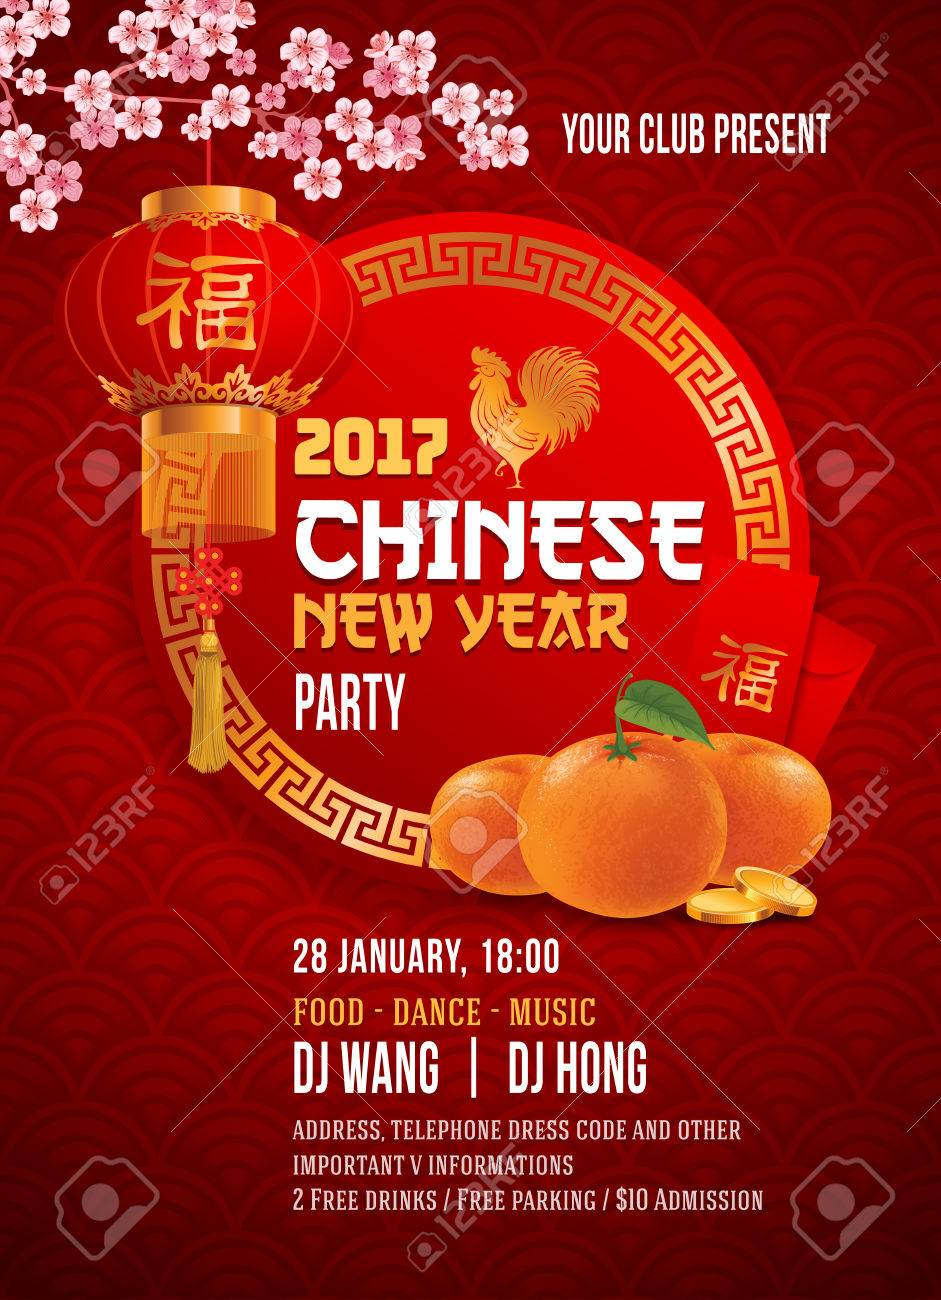 Chinese New Year party design template with chinese symbols of lucky and in oriental style. Characters on lantern are mean Good fortune. Vector illustration. - 69425277